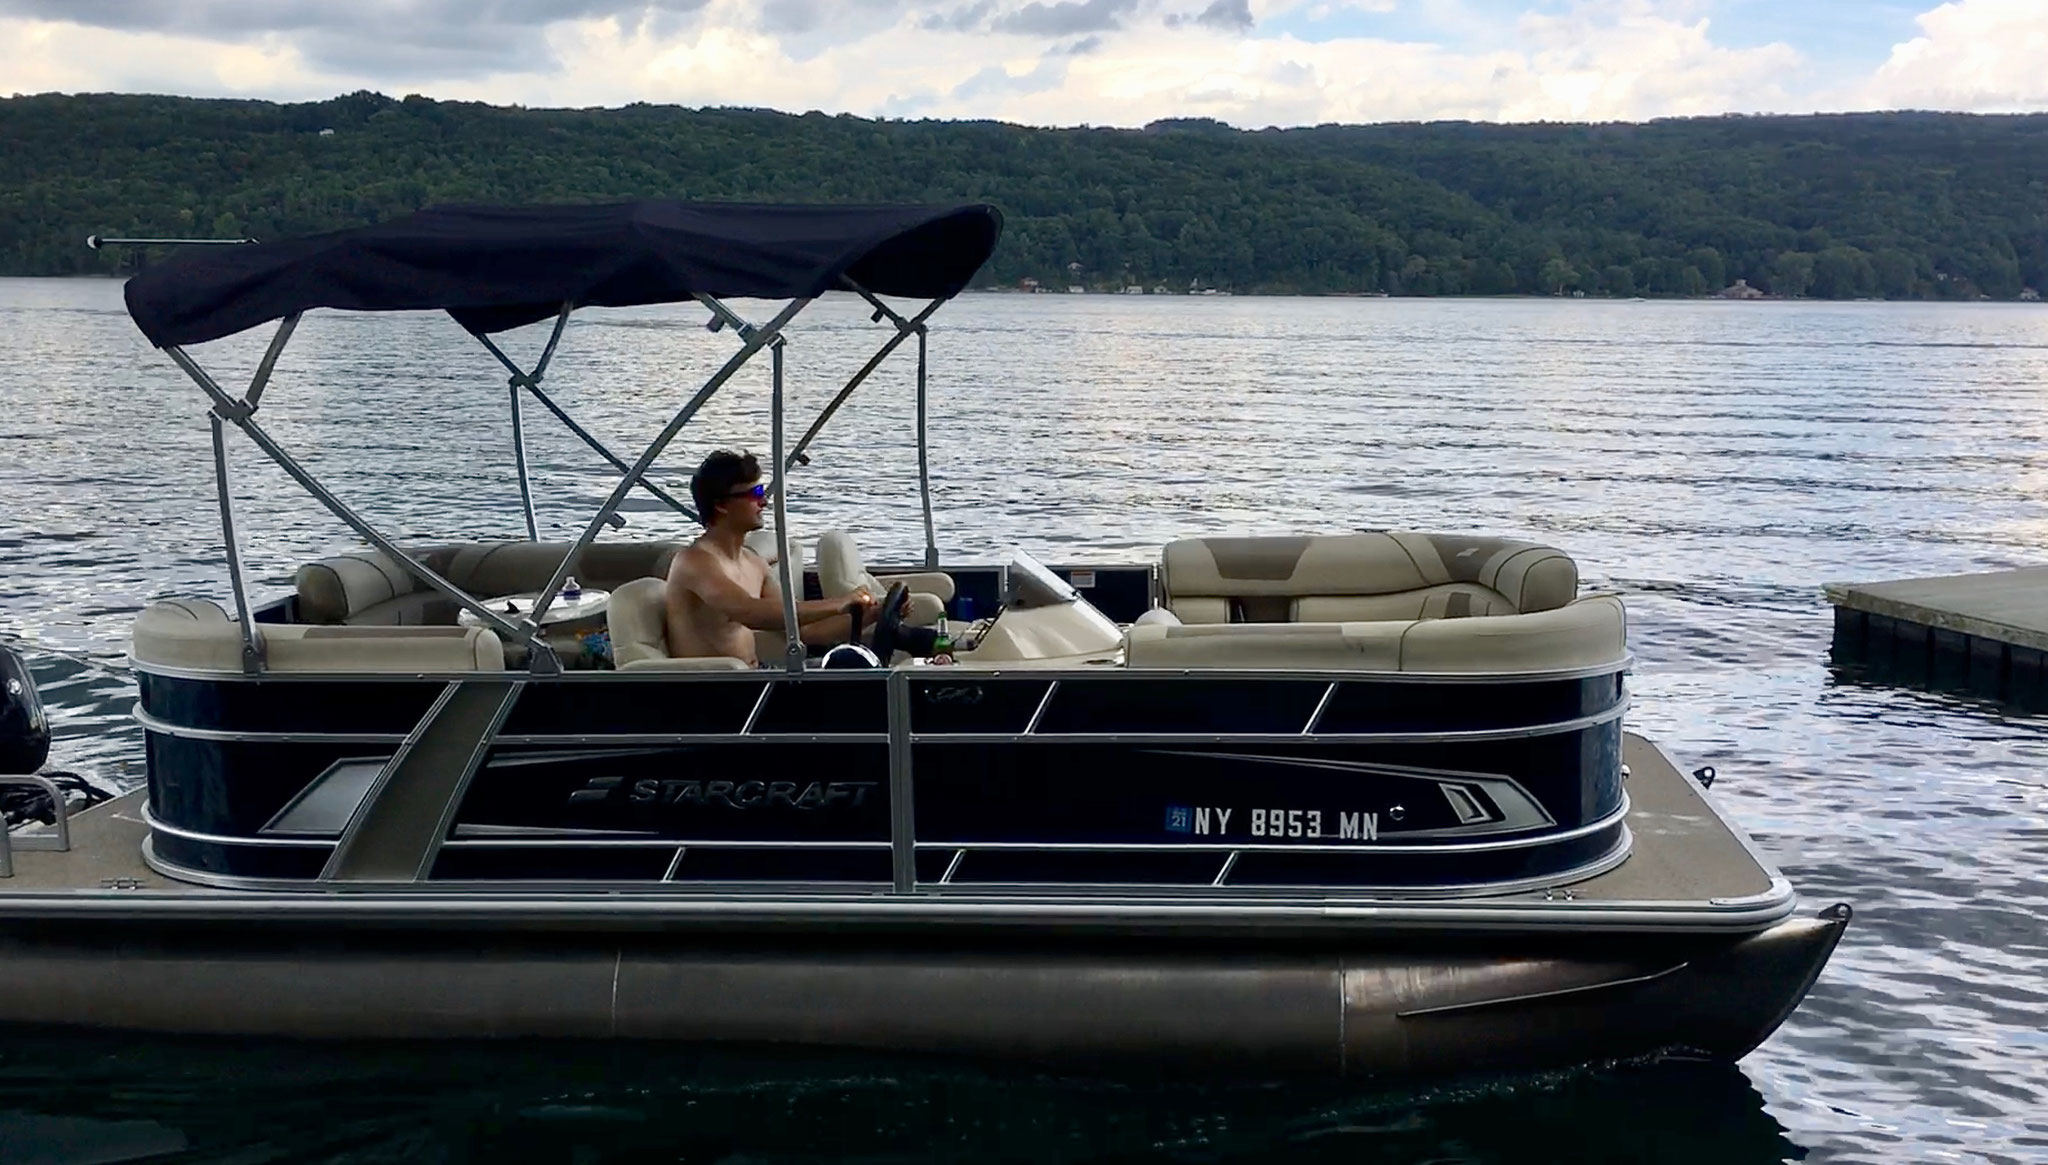 Jack drives the new pontoon boat